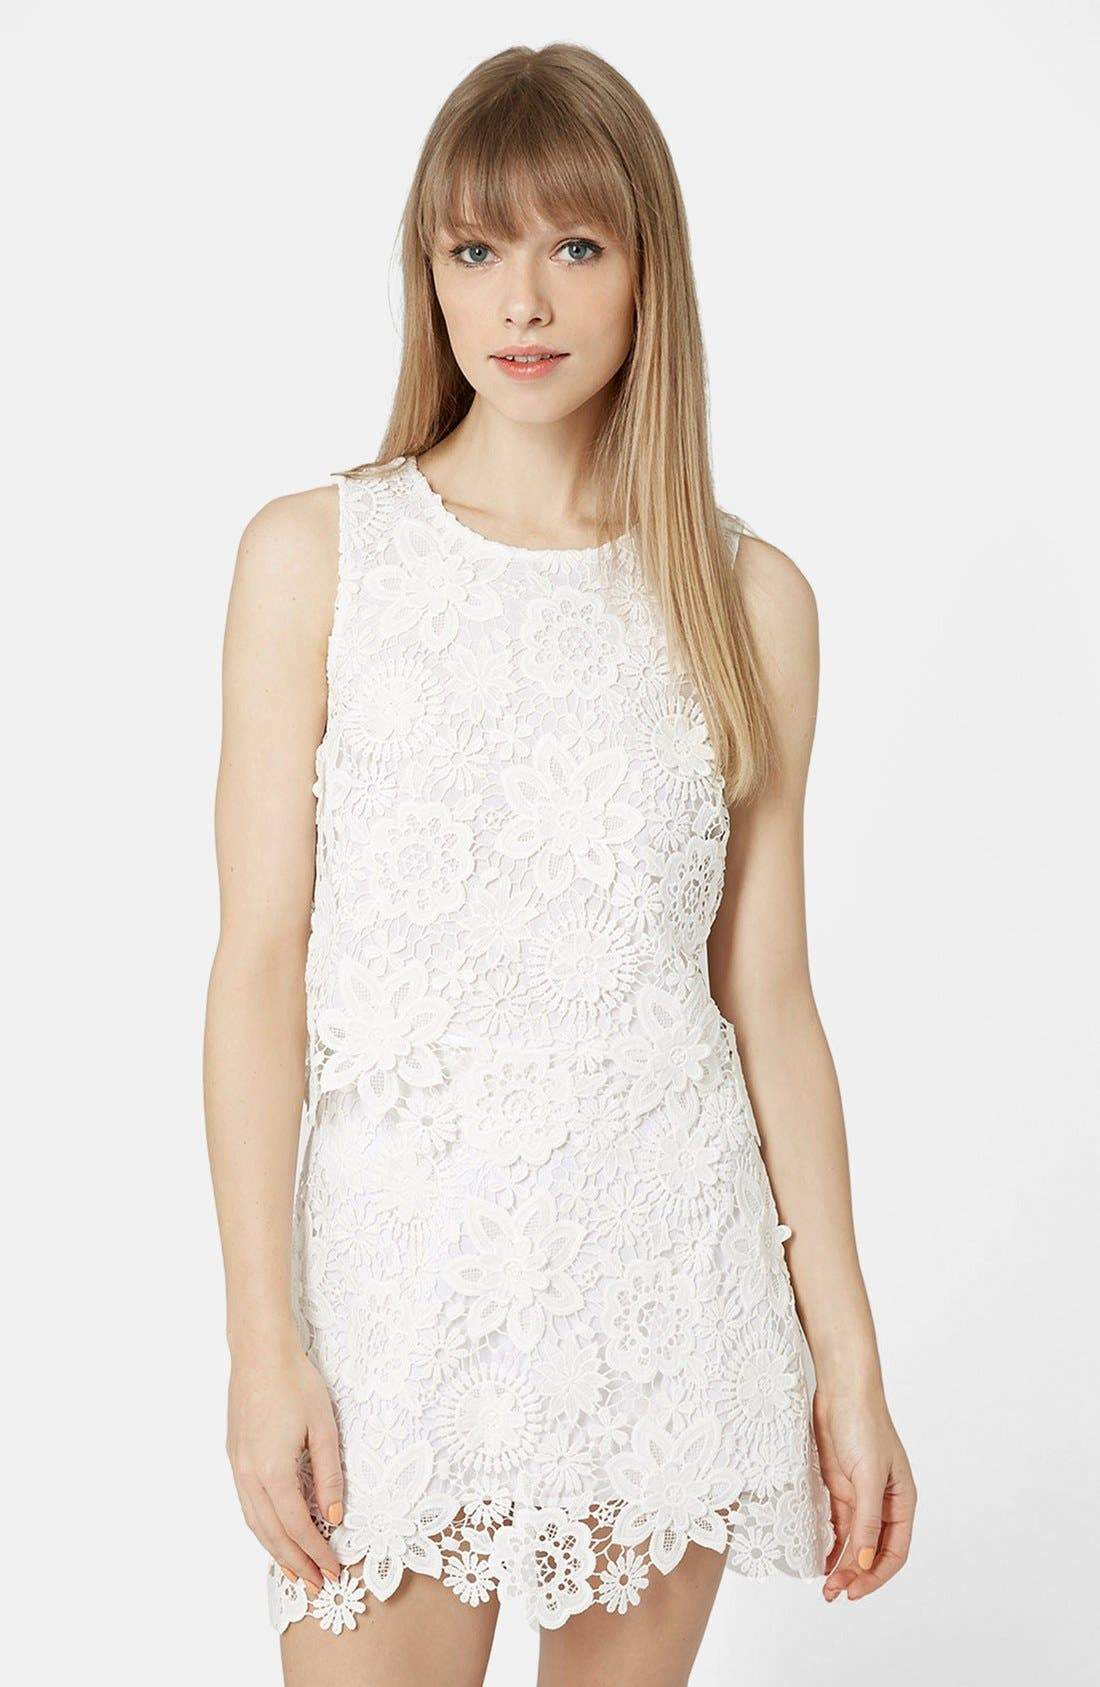 Main Image - Topshop Crochet Lace Shell Top (Petite)